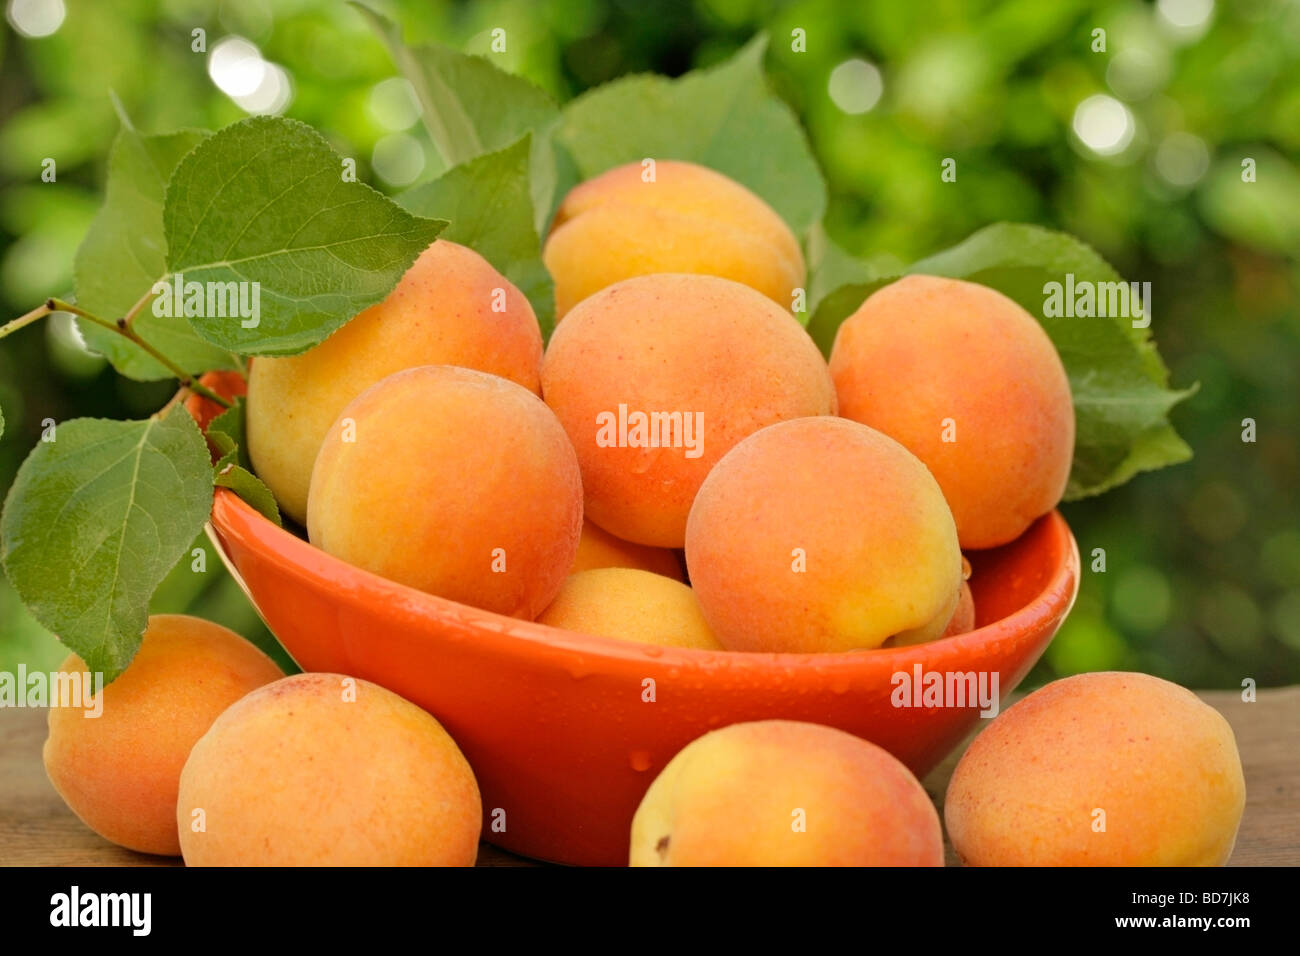 Apricots in natural background - Stock Image